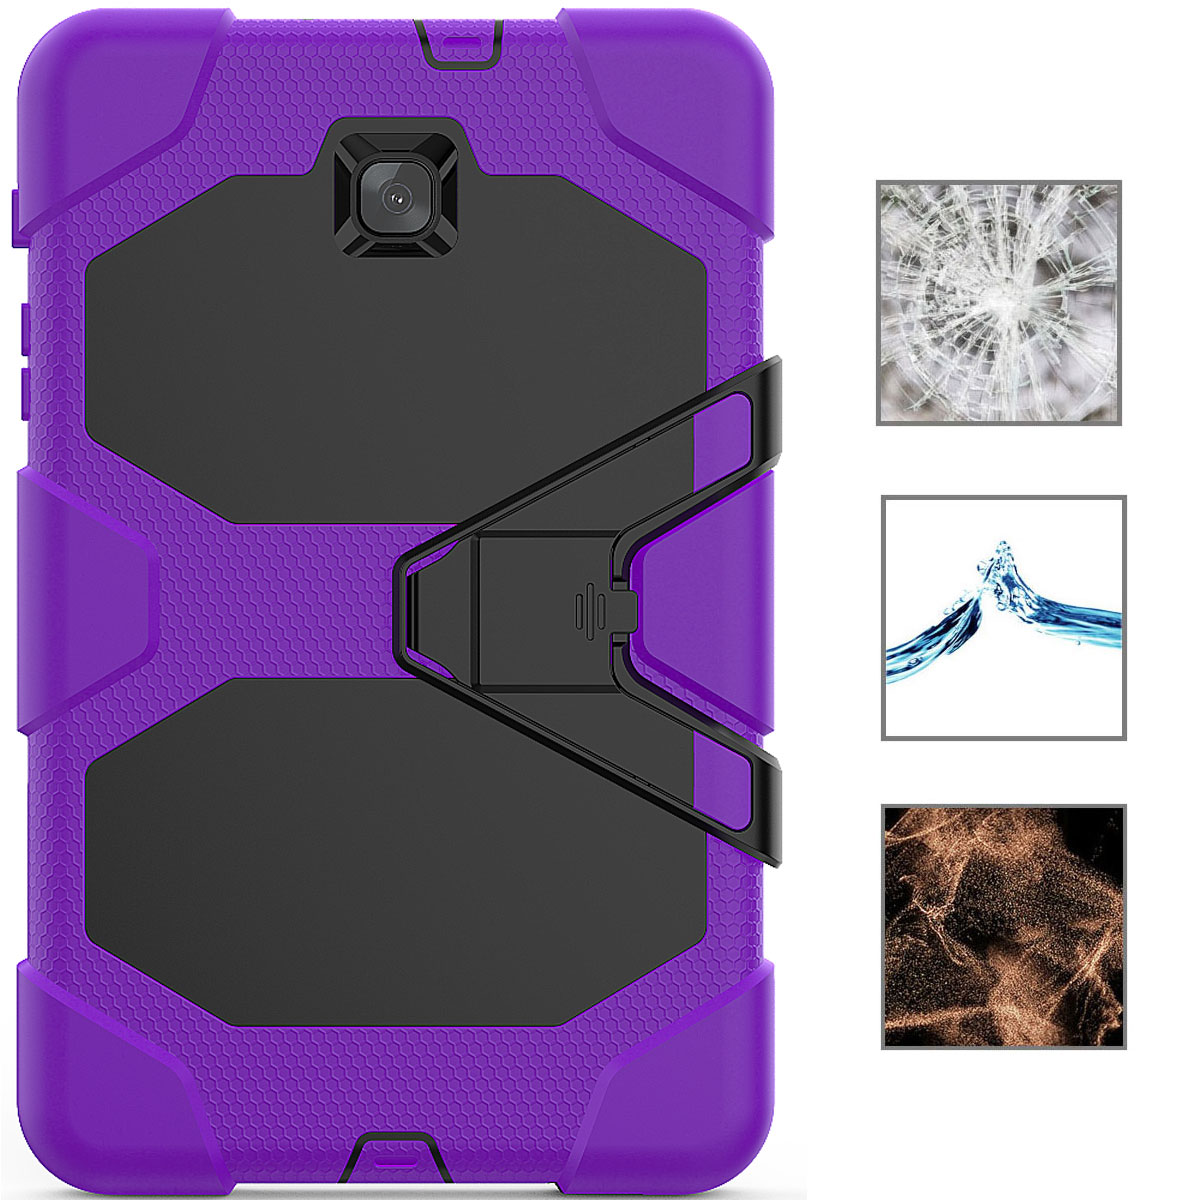 Rugged-Hard-Case-For-Samsung-Galaxy-Tab-A-8-0-2018-SM-T387-with-Screen-Protector thumbnail 31